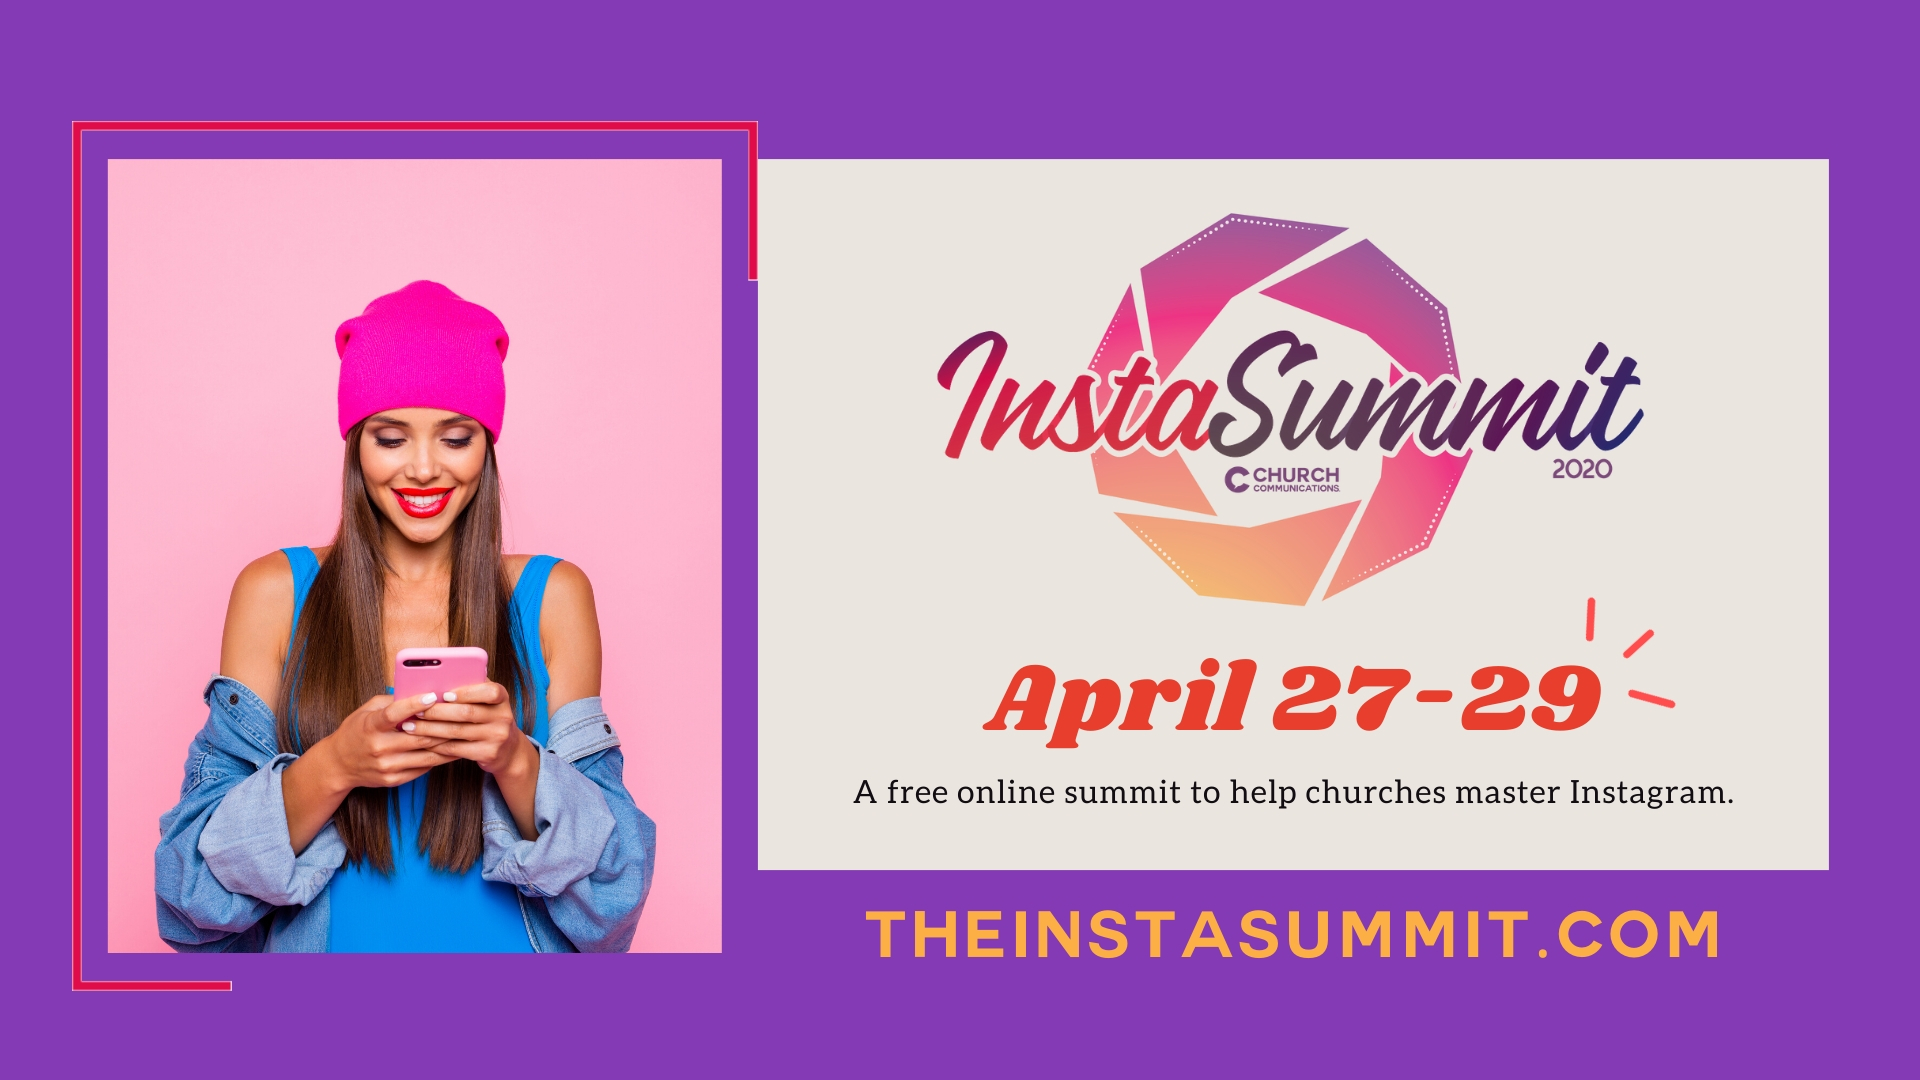 The InstaSummit | April 27-29 | FREE online summit